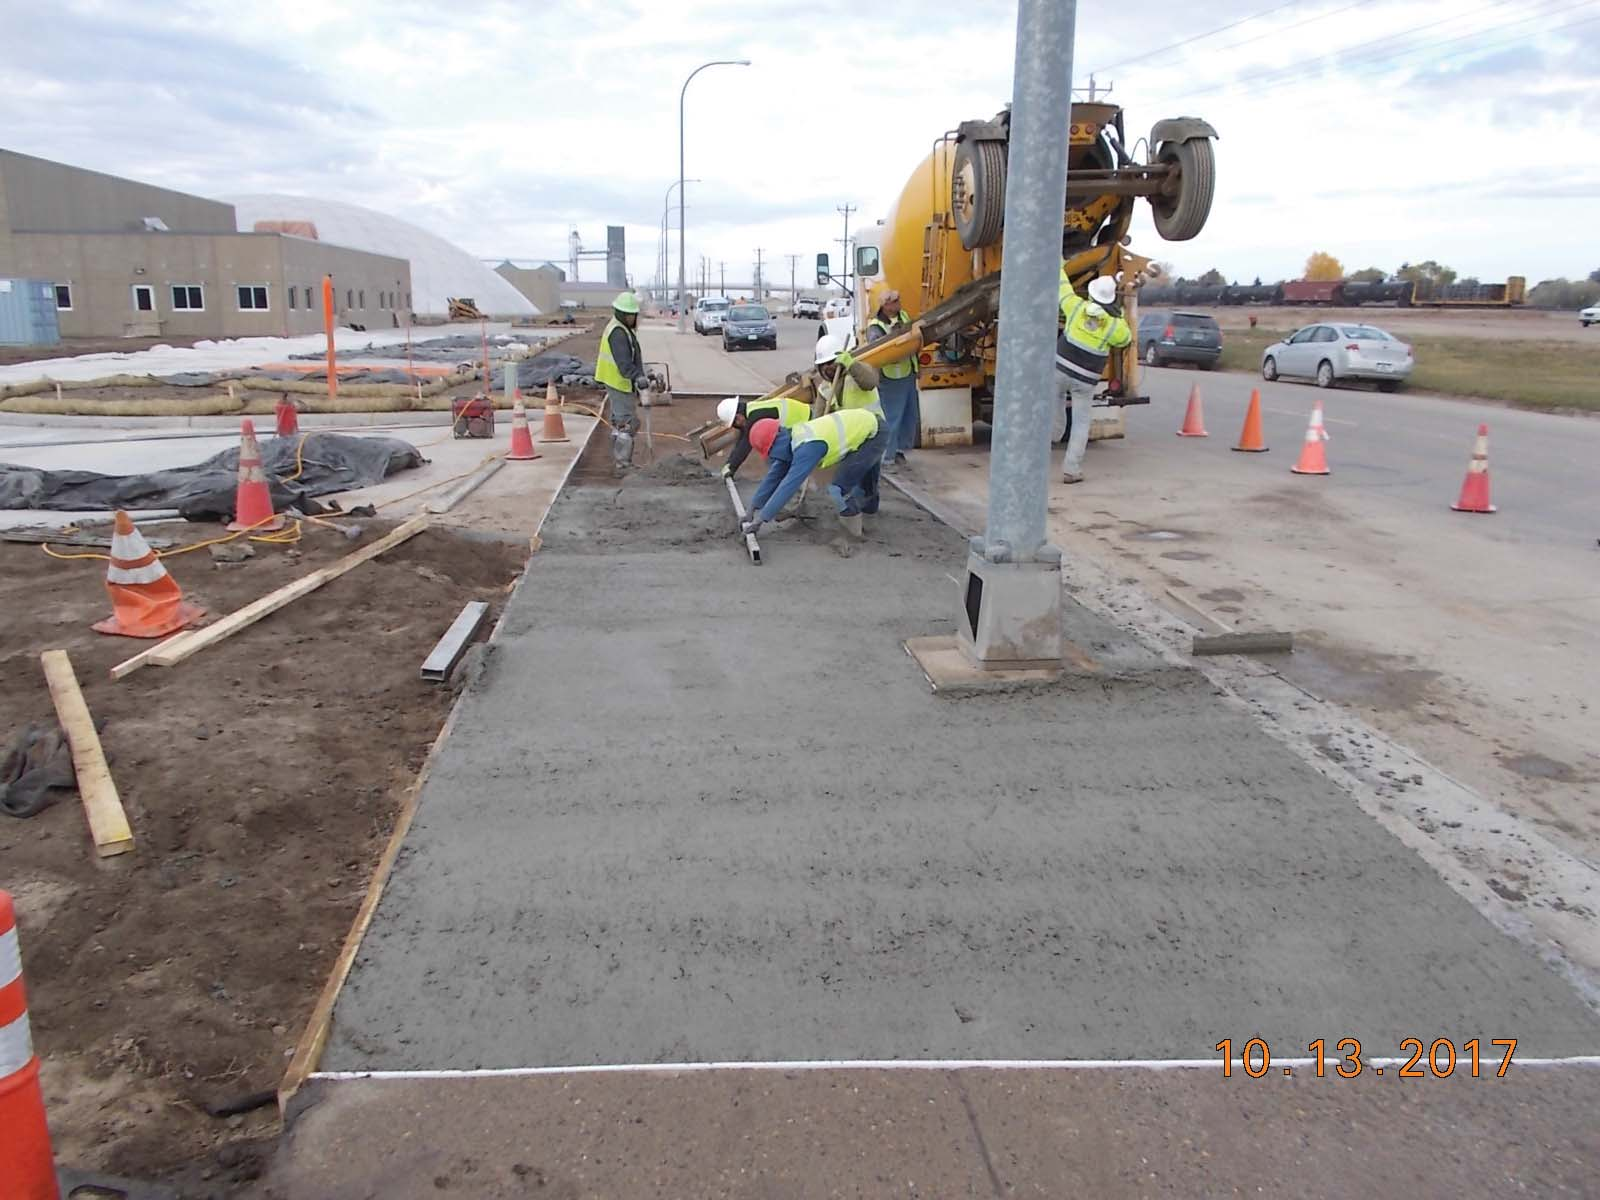 Winn Construction placing concrete for the east drive approach slab.